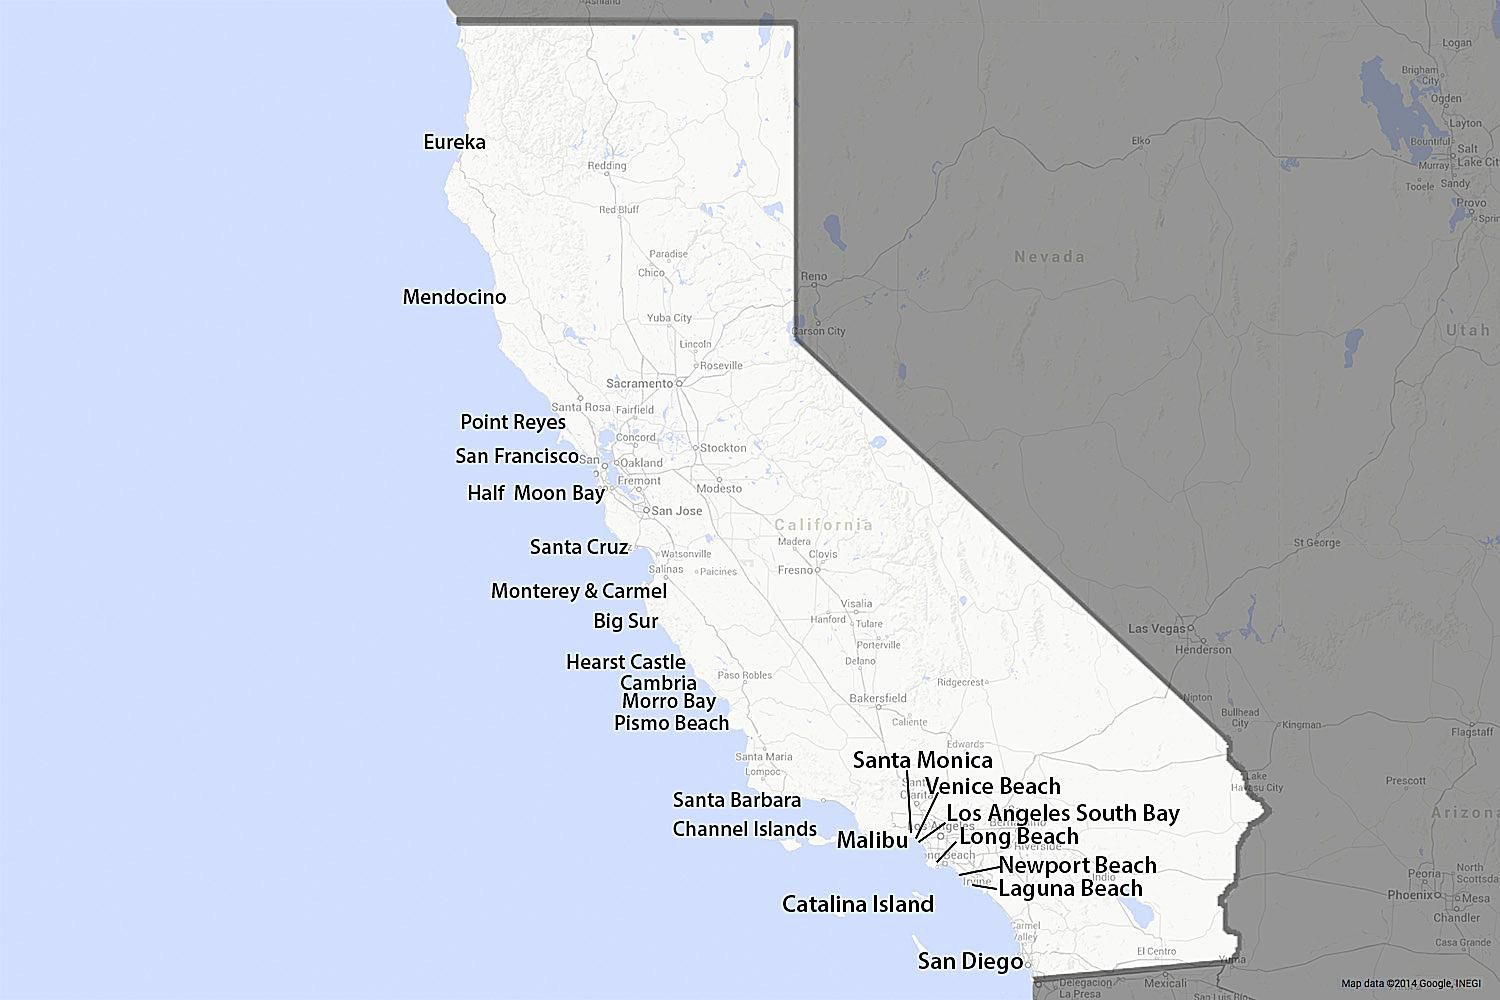 Map Of The California Coast - 1,100 Glorious Miles - Southern California Beach Towns Map